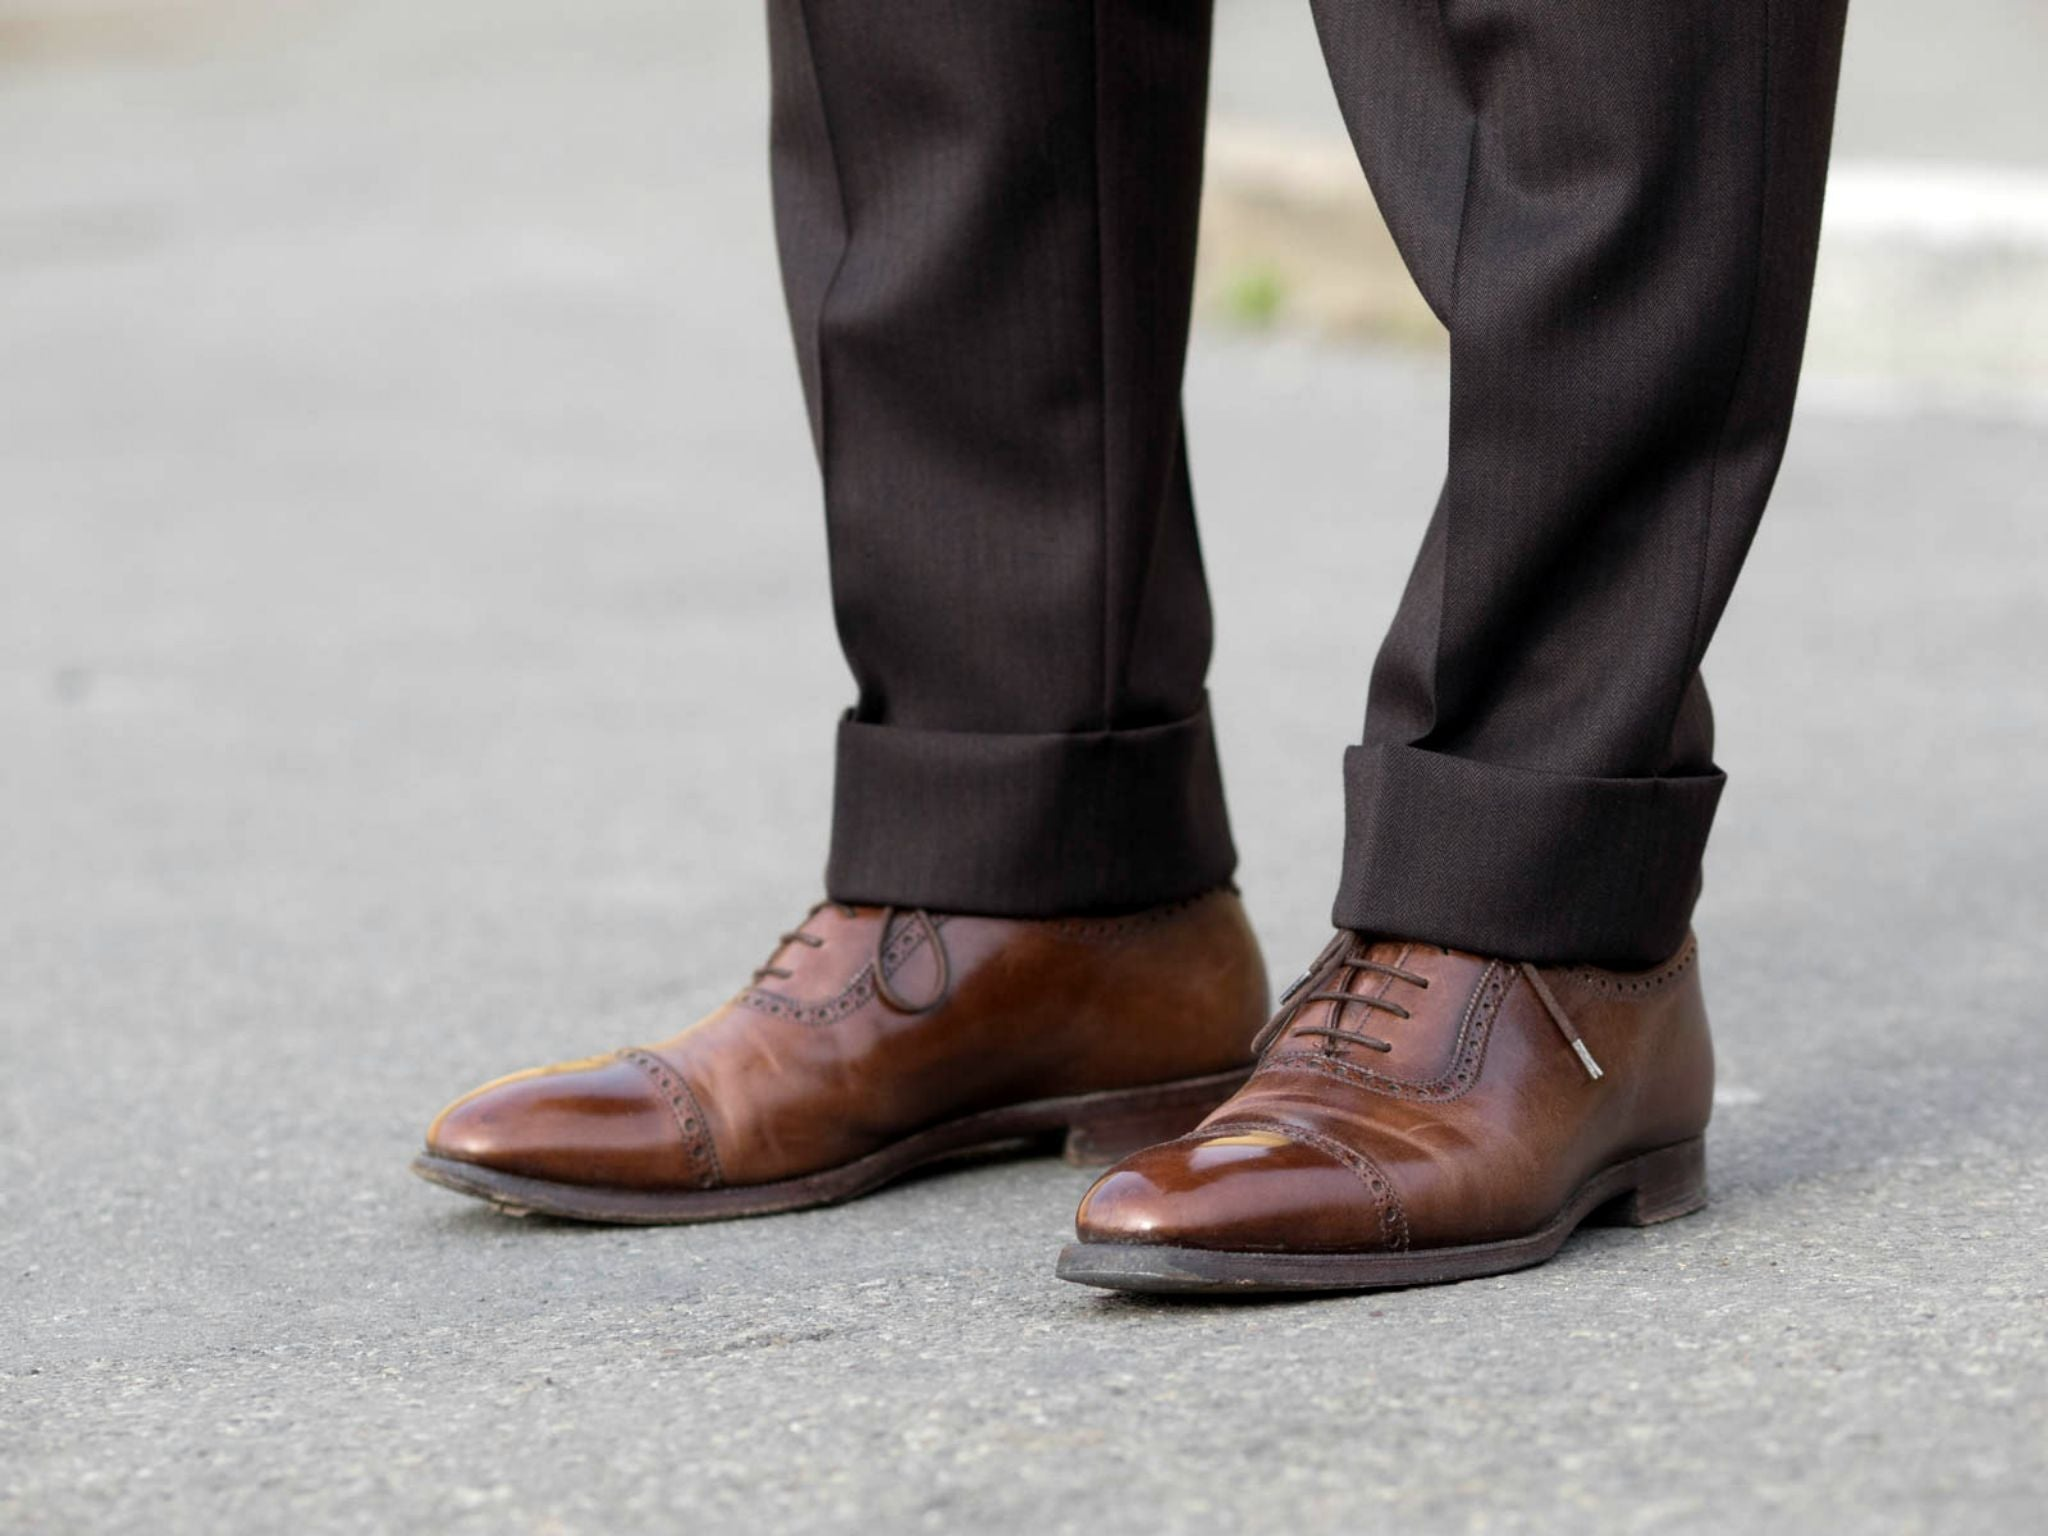 Suit for all seasons - brown calf leather adelaide oxfords with the brown herringbone suit